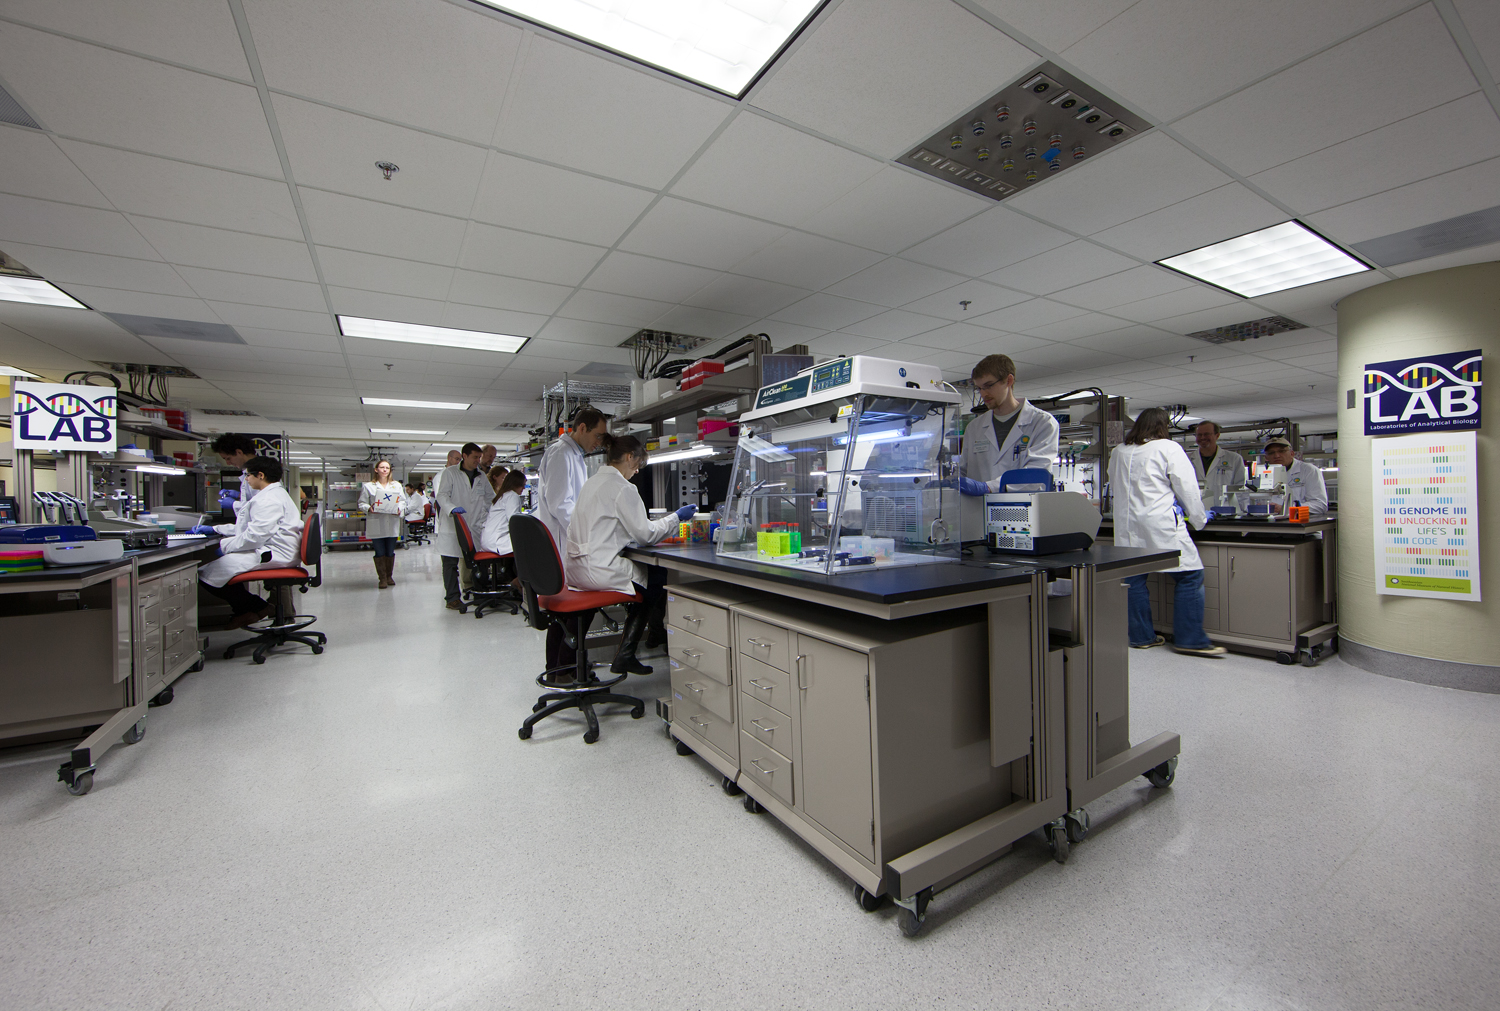 Photograph of scientists working in a LAB space